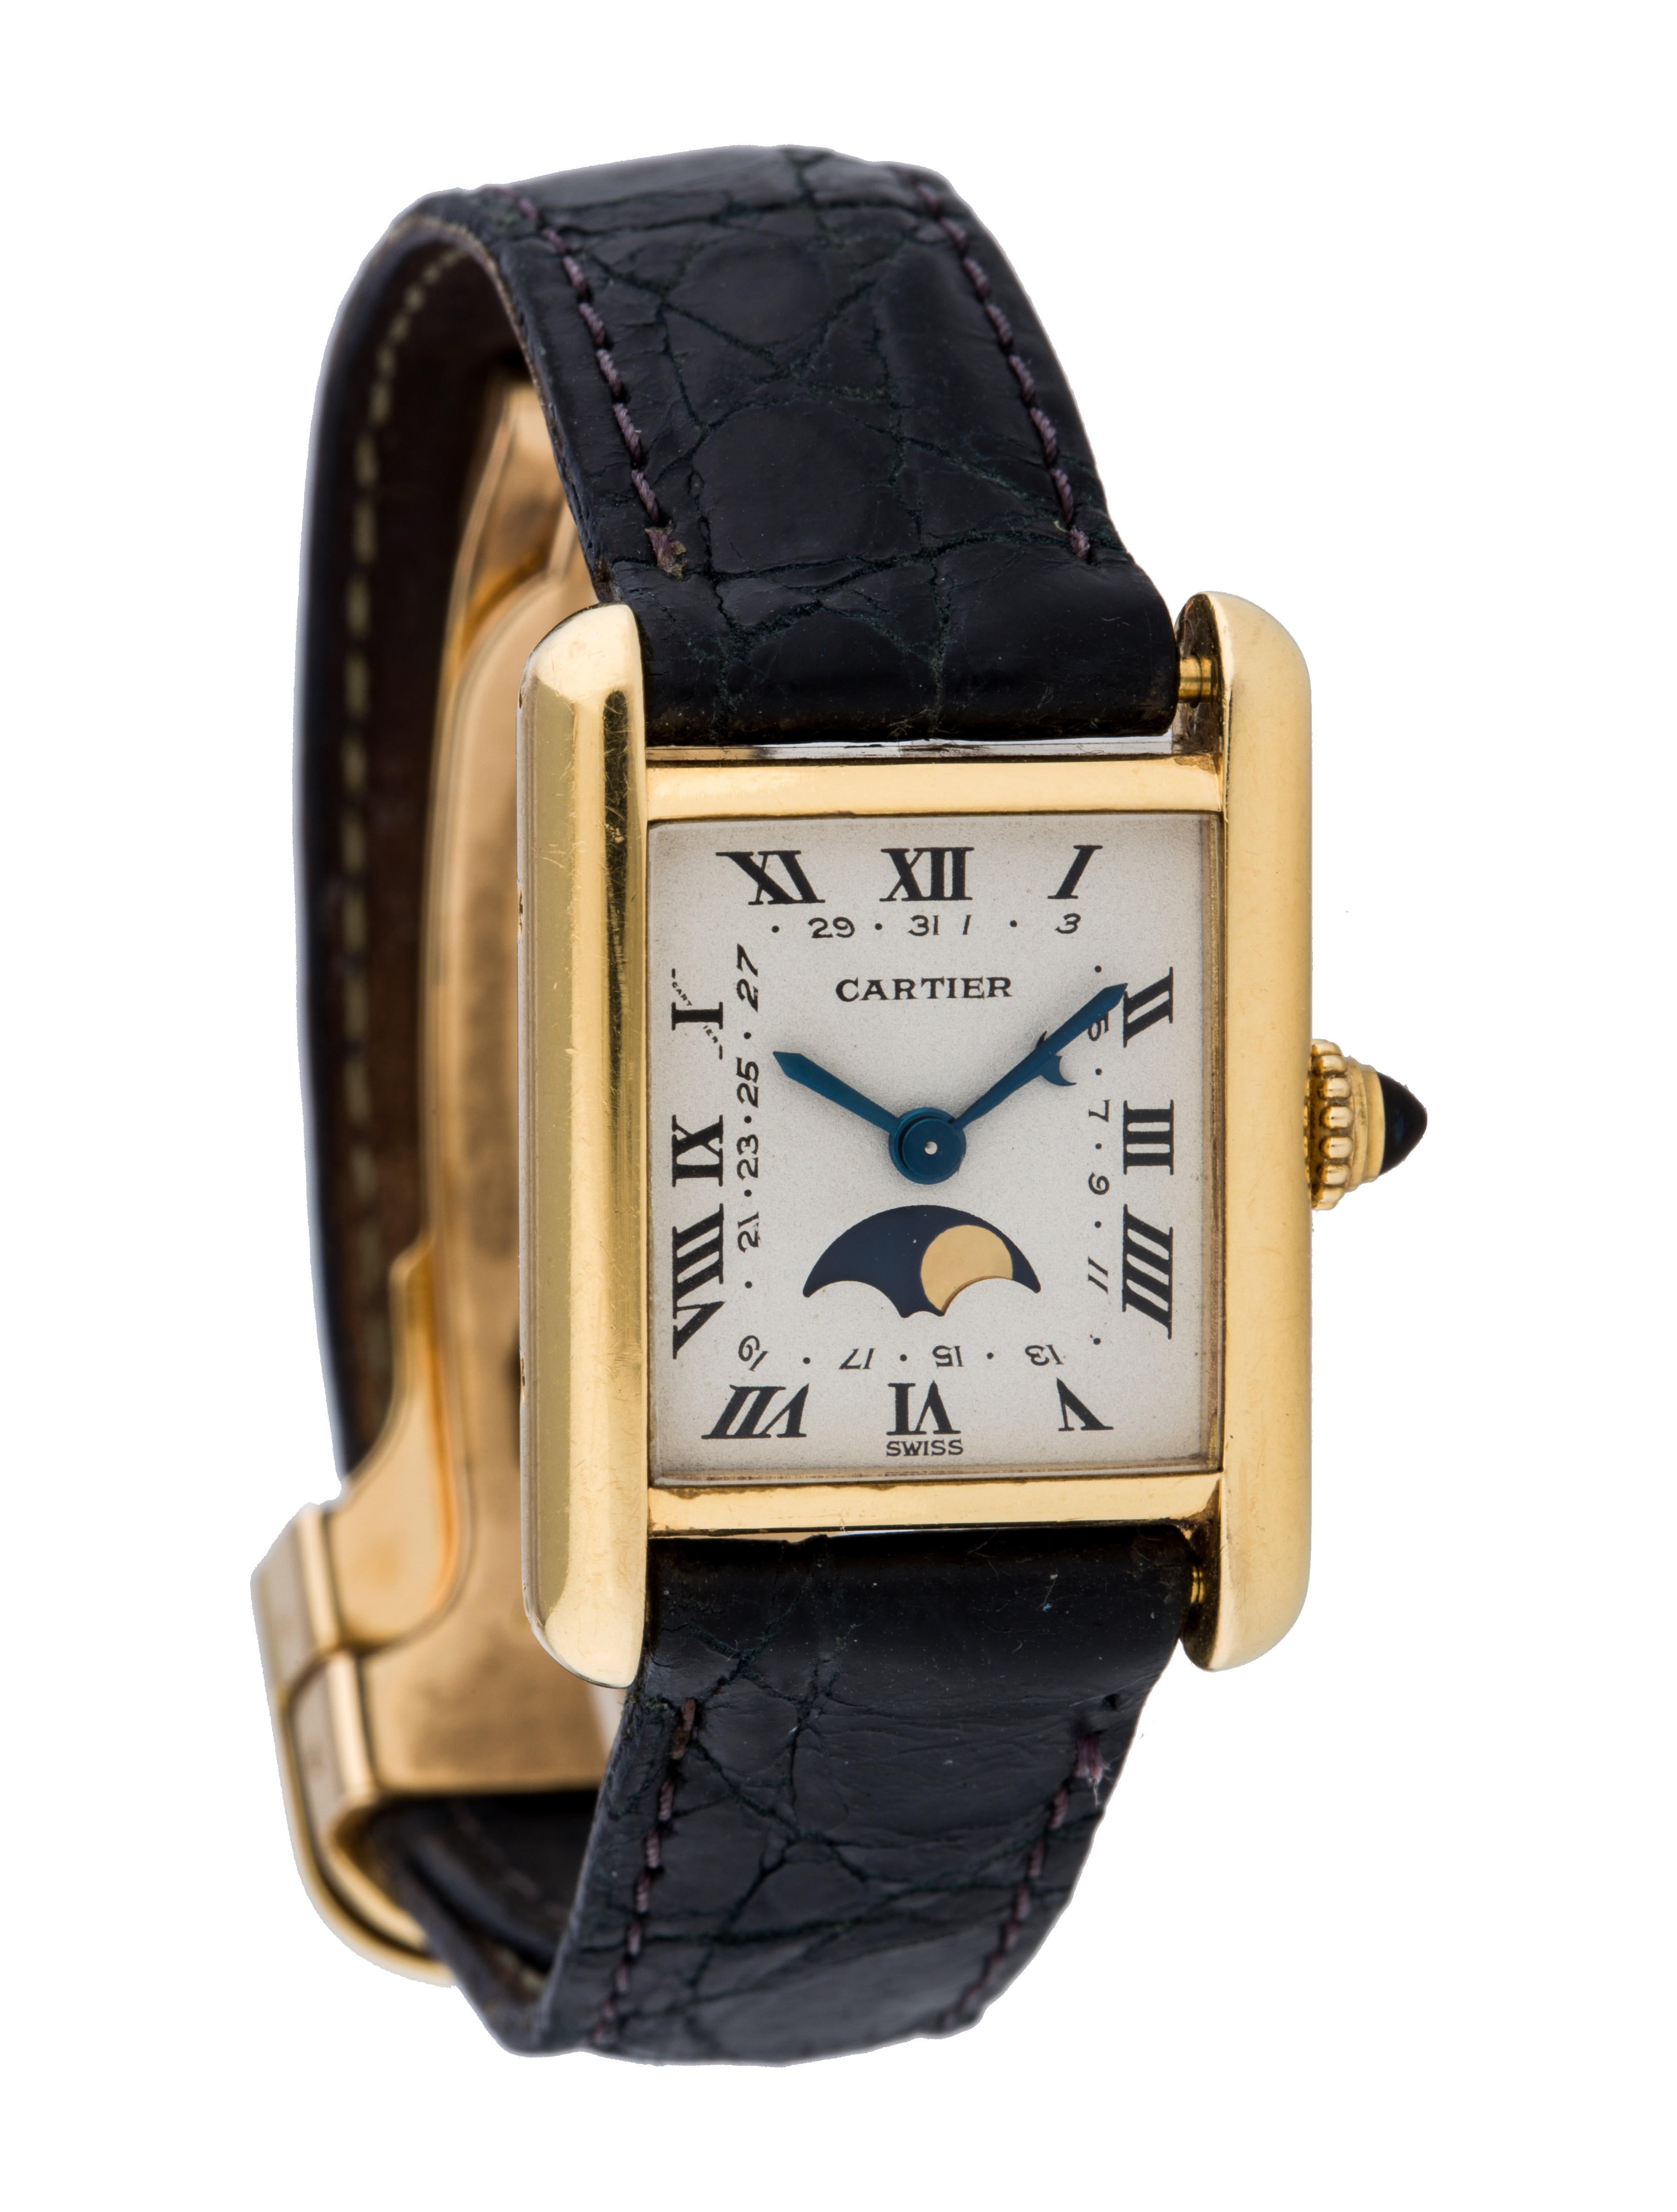 watch cartier louis watches sold tank vintage shop